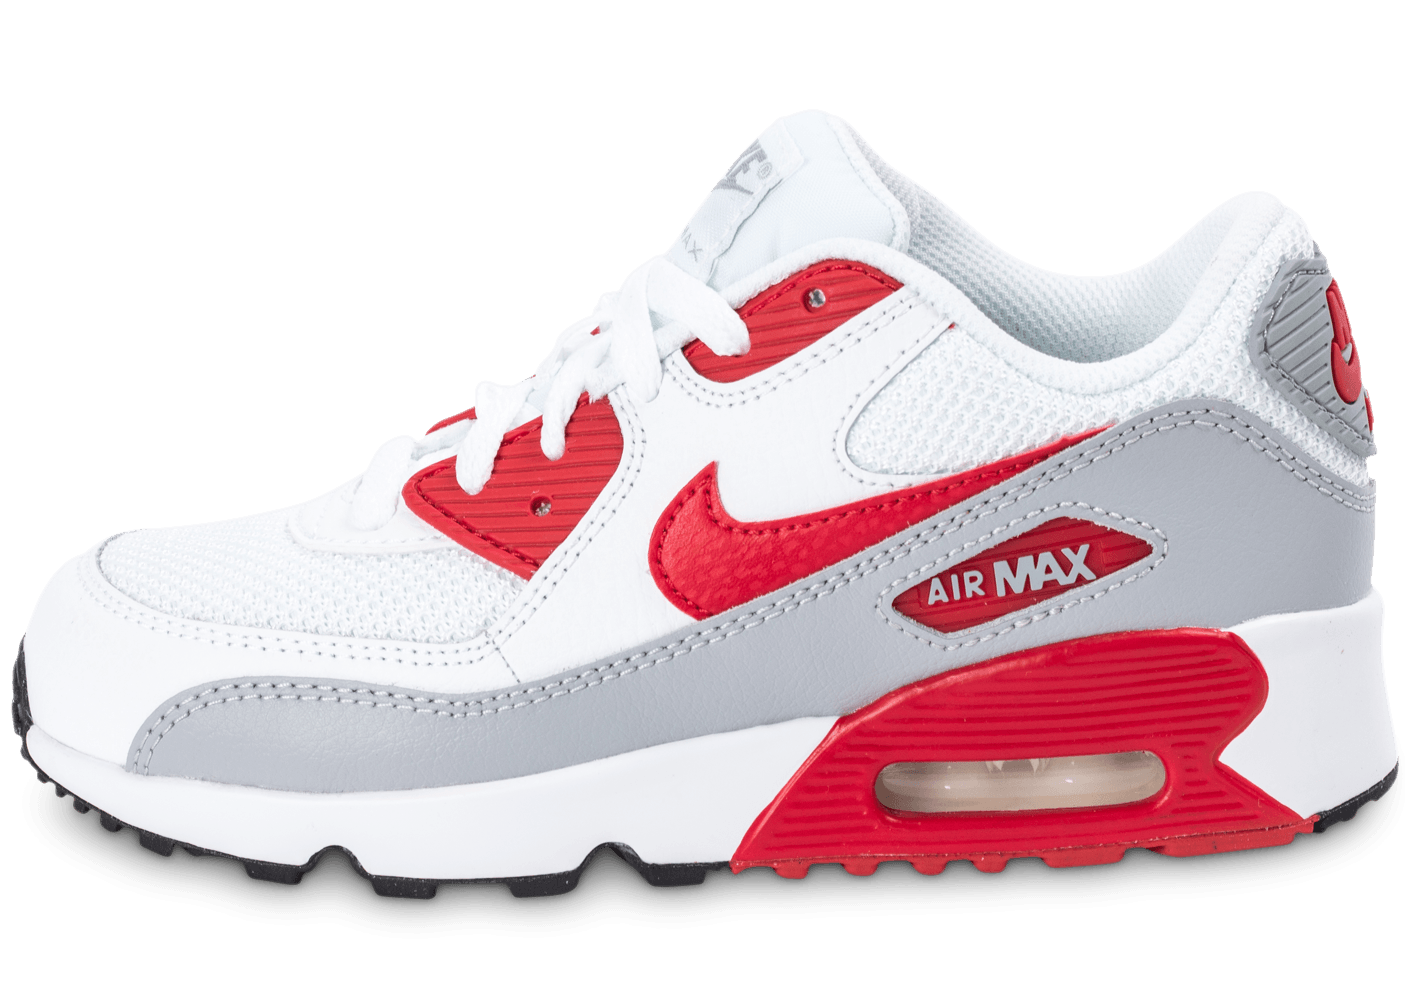 finest selection 23355 f4b48 CNR32 jeune - Nike air max parfait - rouge blanc chaussures de course for  fr air max 90 ... ... Des Baskets Nike. Femme Nike Air Max 1 Ultra Flyknit  ...